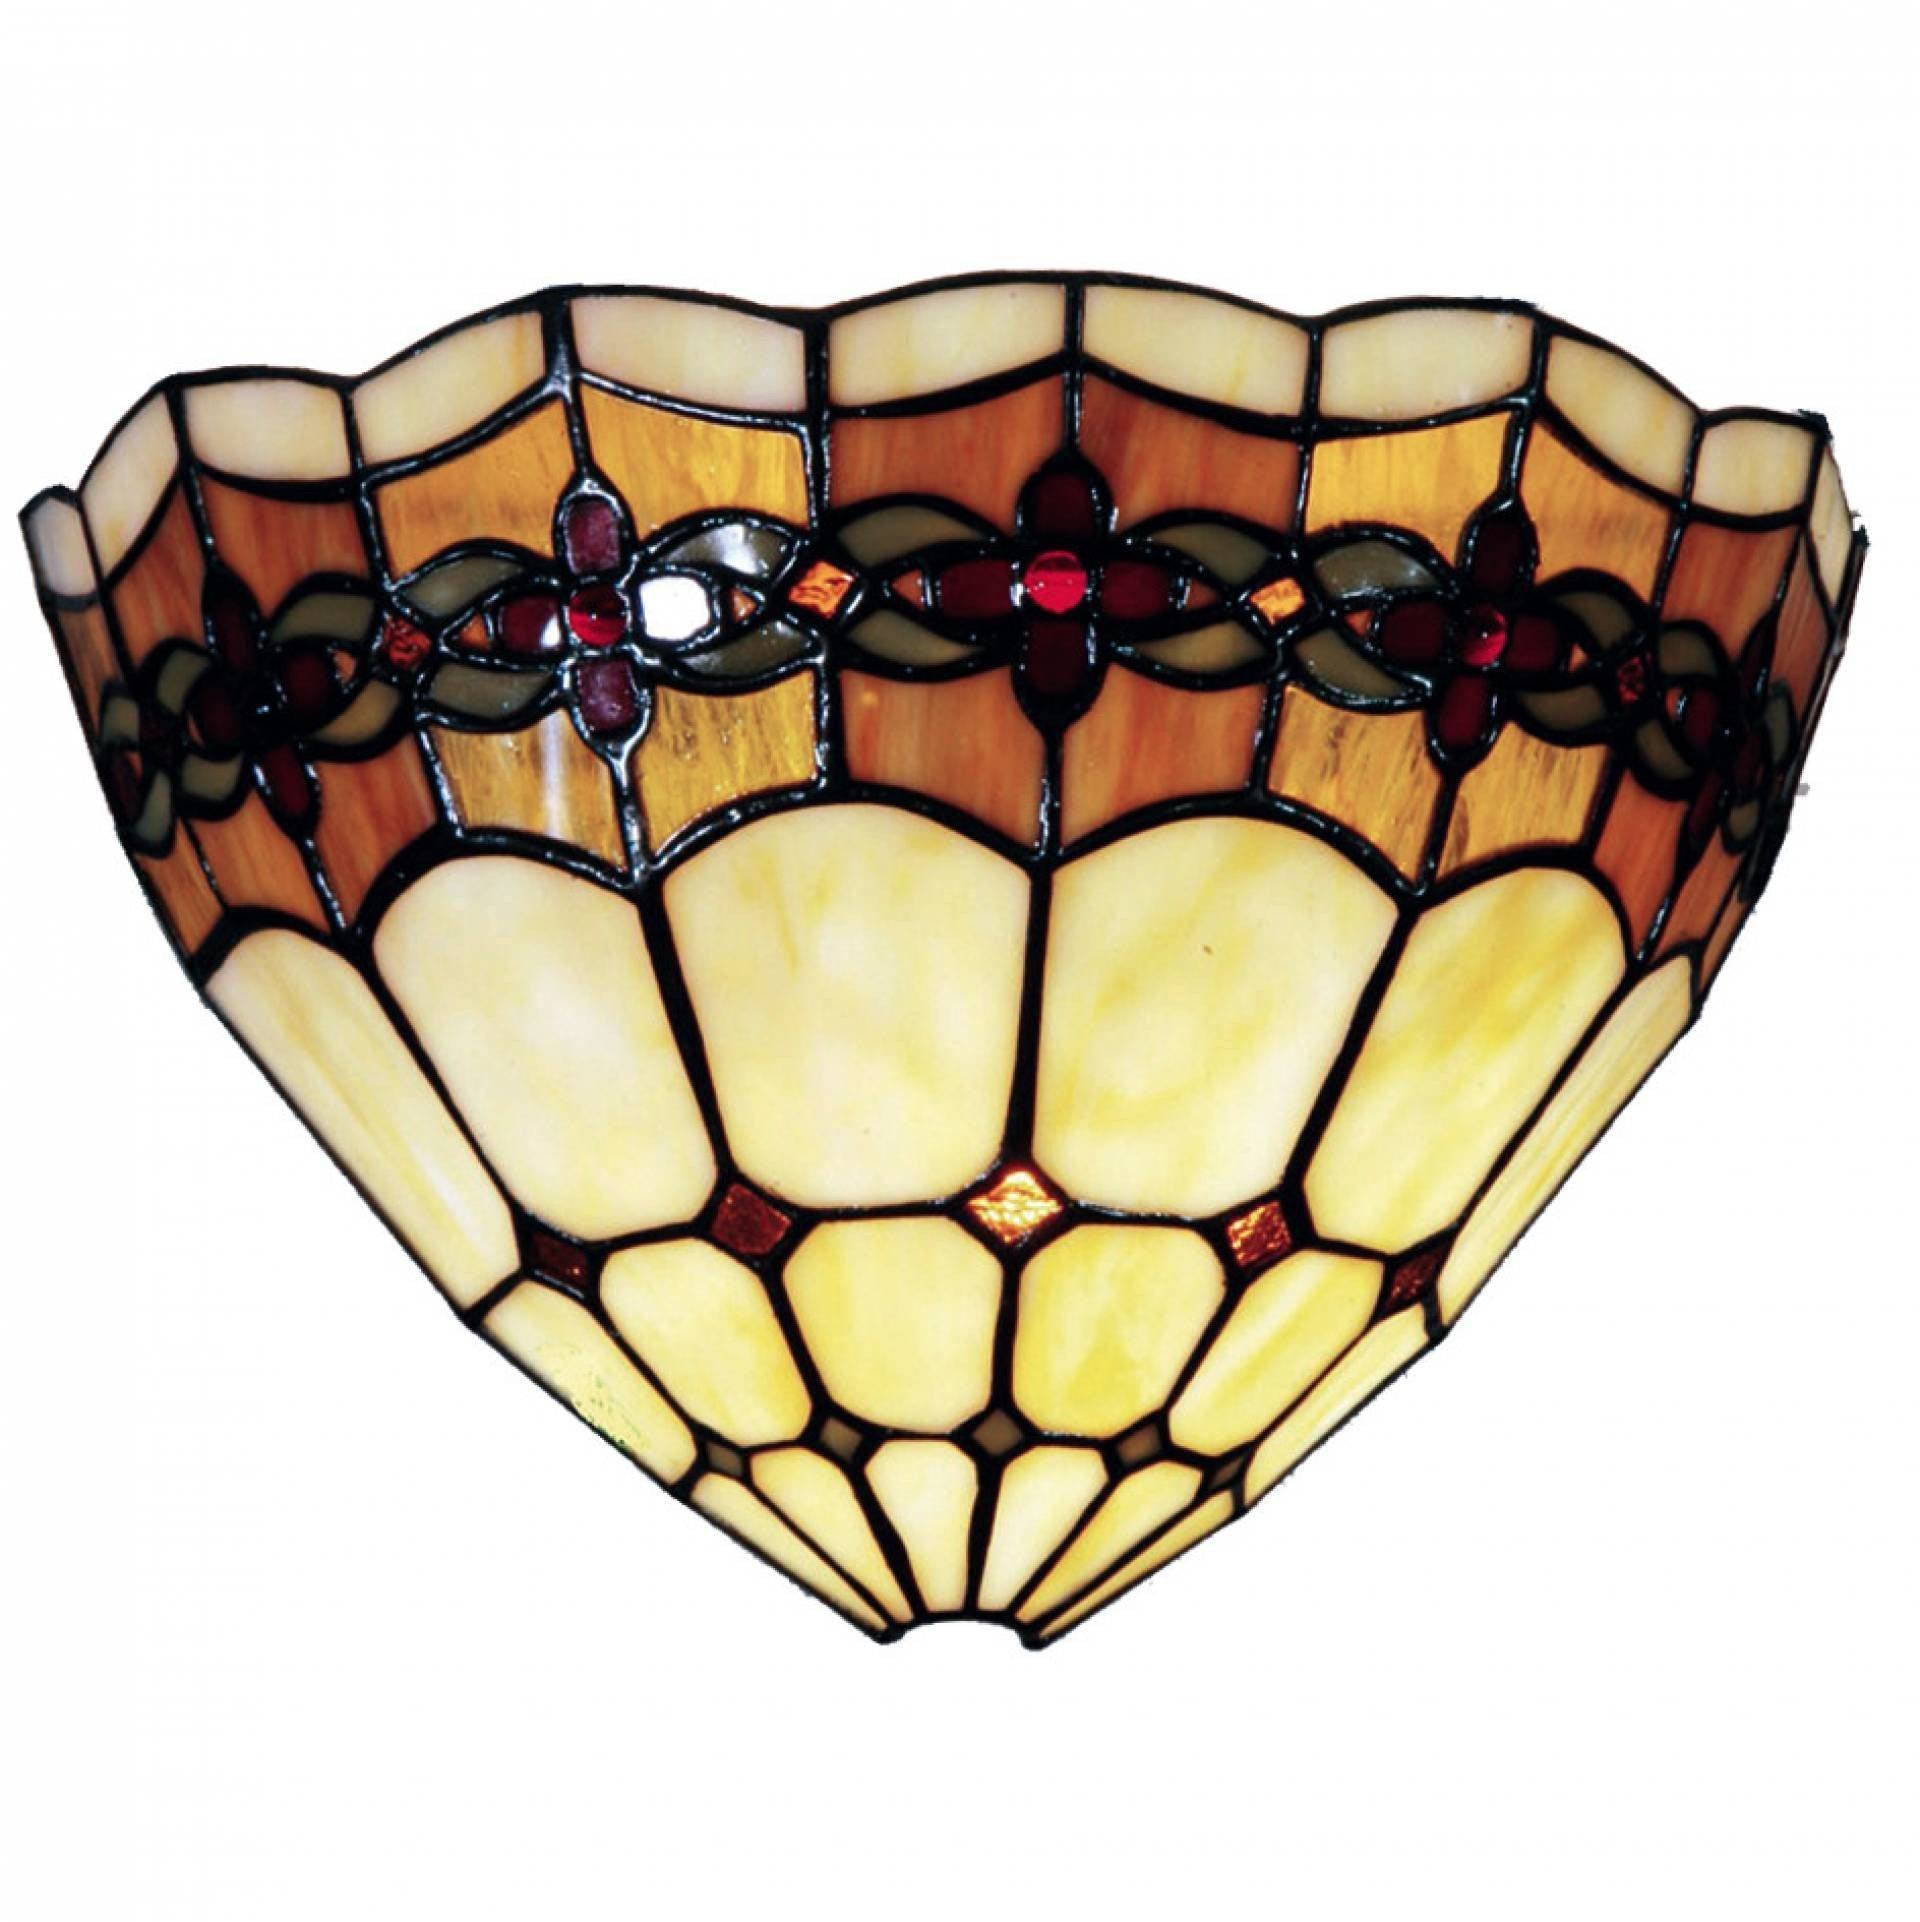 Tiffany Wall Lights - Atlantic Tiffany Wall Light